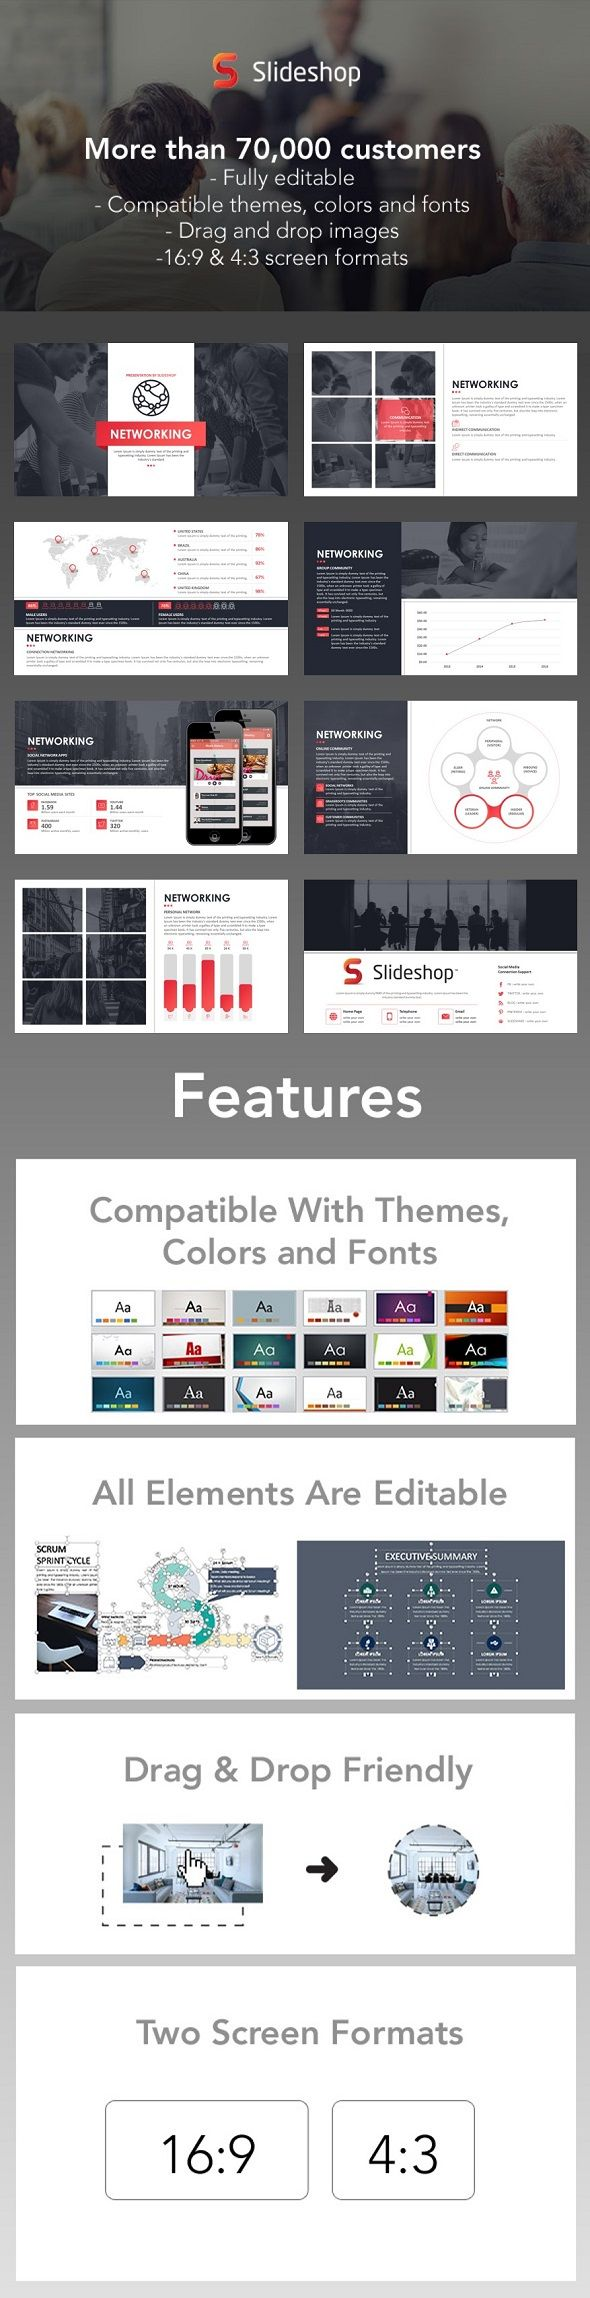 Networking | Template, Presentation templates and Layout design